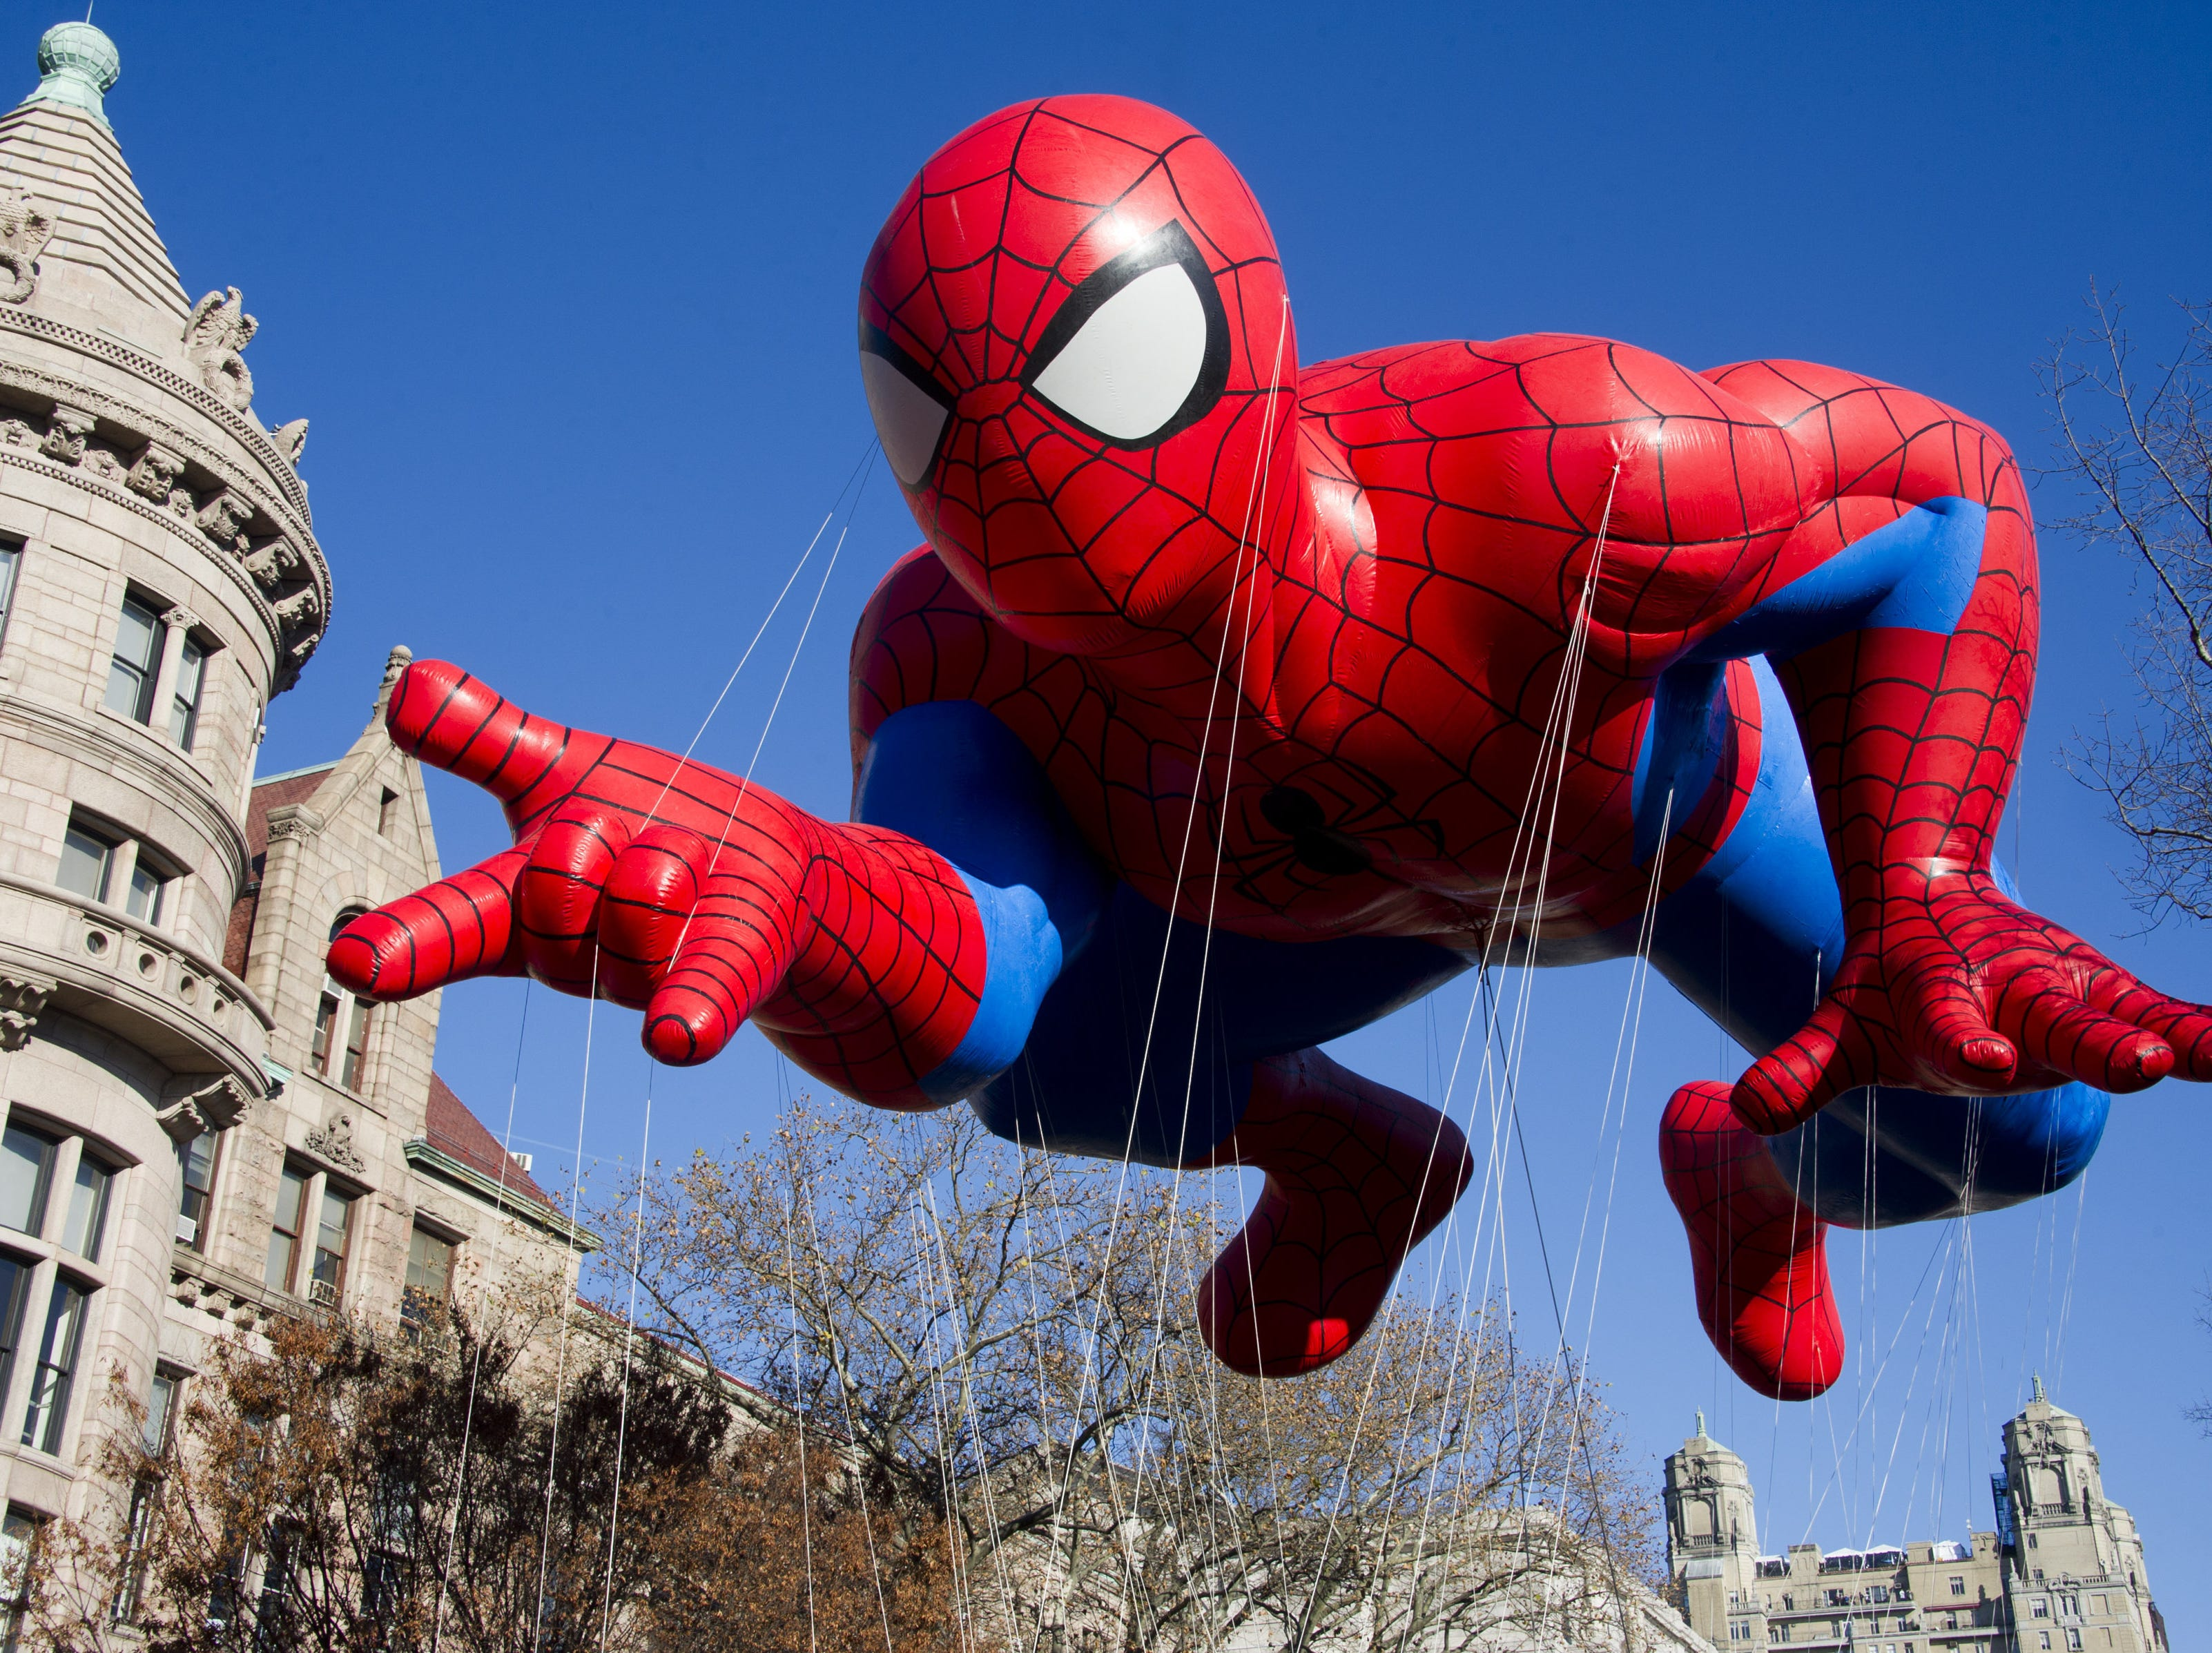 The Spider-Man balloon during last year?s Macy?s Thanksgiving Day Parade. AP file photo/Charles Sykes FILE - This Nov. 24, 2011 file photo shows the Spider-Man balloon during the Macy's Thanksgiving Day Parade in New York. The parade has to be a crowd-pleaser for a multigenerational crowd. More than 3 million people typically attend the event that also unfolds in front of a TV audience of 50 million. This year's parade will feature balloons include Papa Smurf and the Elf on a Shelf, while Buzz Lightyear, Sailor Mickey Mouse and the Pillsbury Doughboy keep their place in the lineup. A new version of Hello Kitty is also to be included. (AP Photo/Charles Sykes, file)